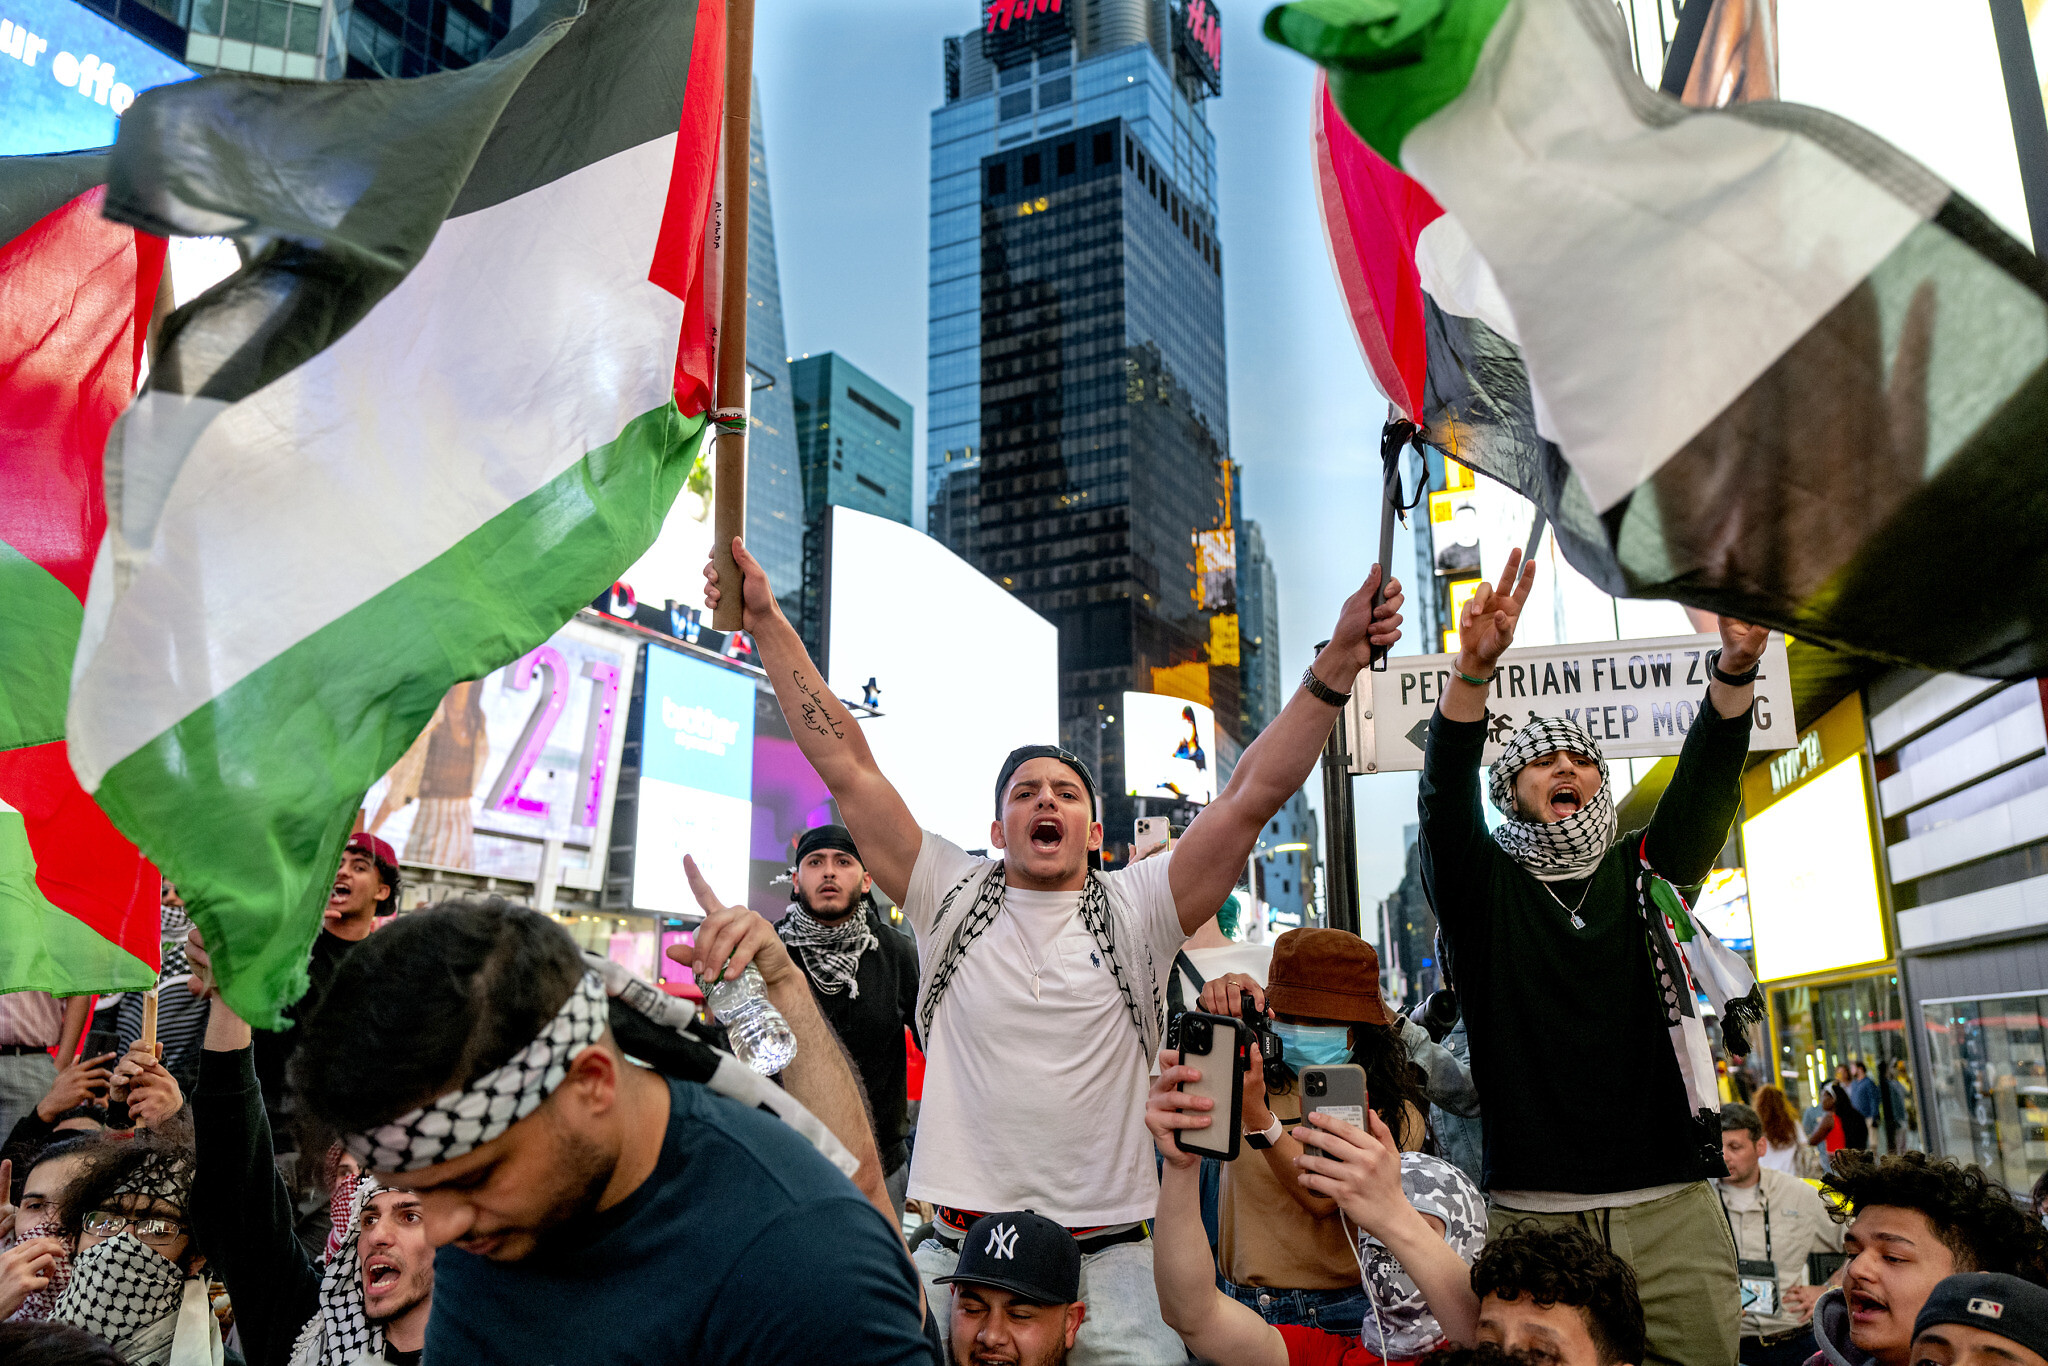 Jews attacked, one person burned amid pro-Palestinian protests in New York City | The Times of Israel